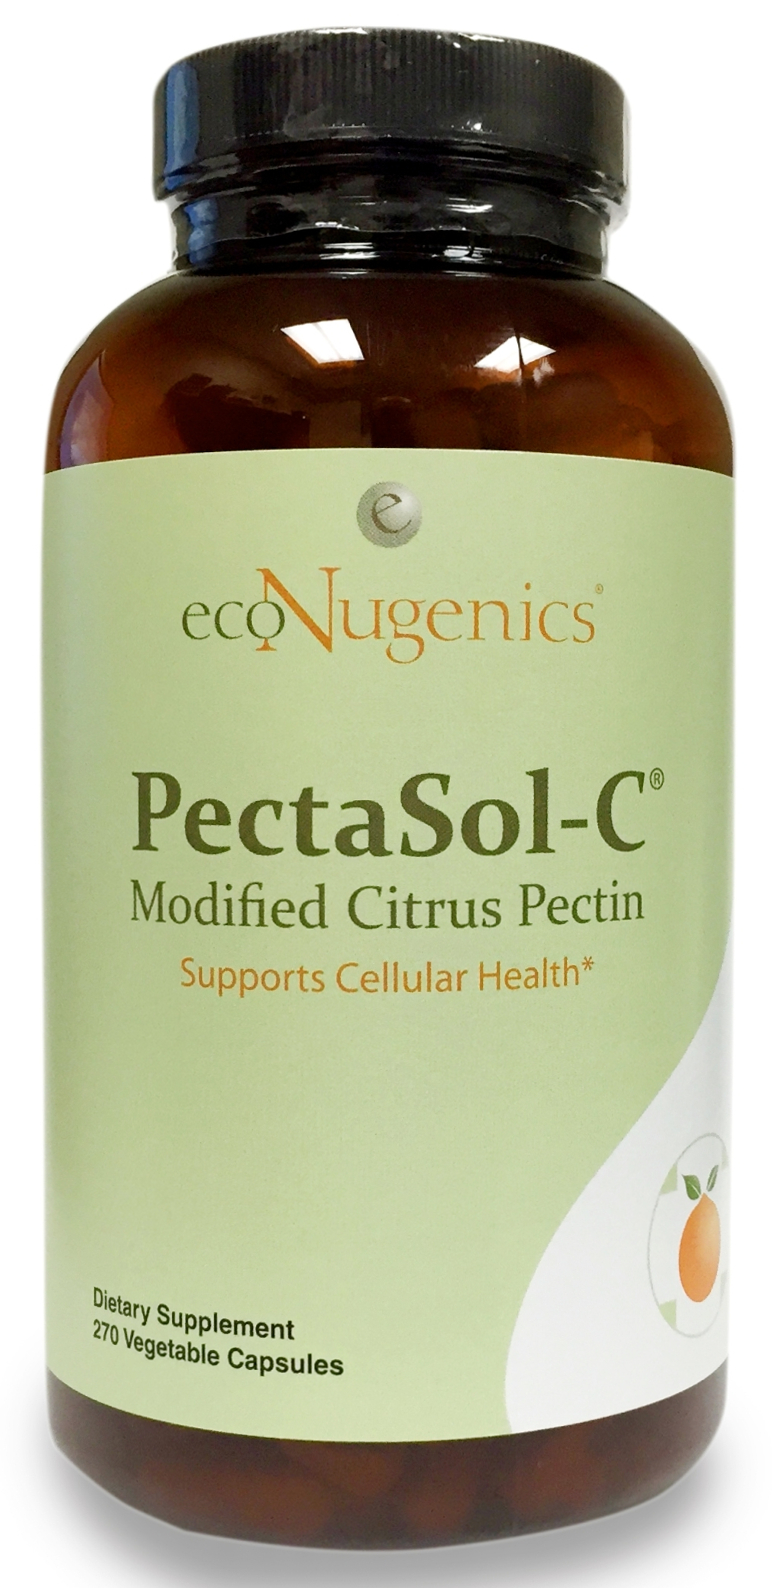 PectaSol-C Modified Citrus Pectin 270 vege caps by EcoNugenics